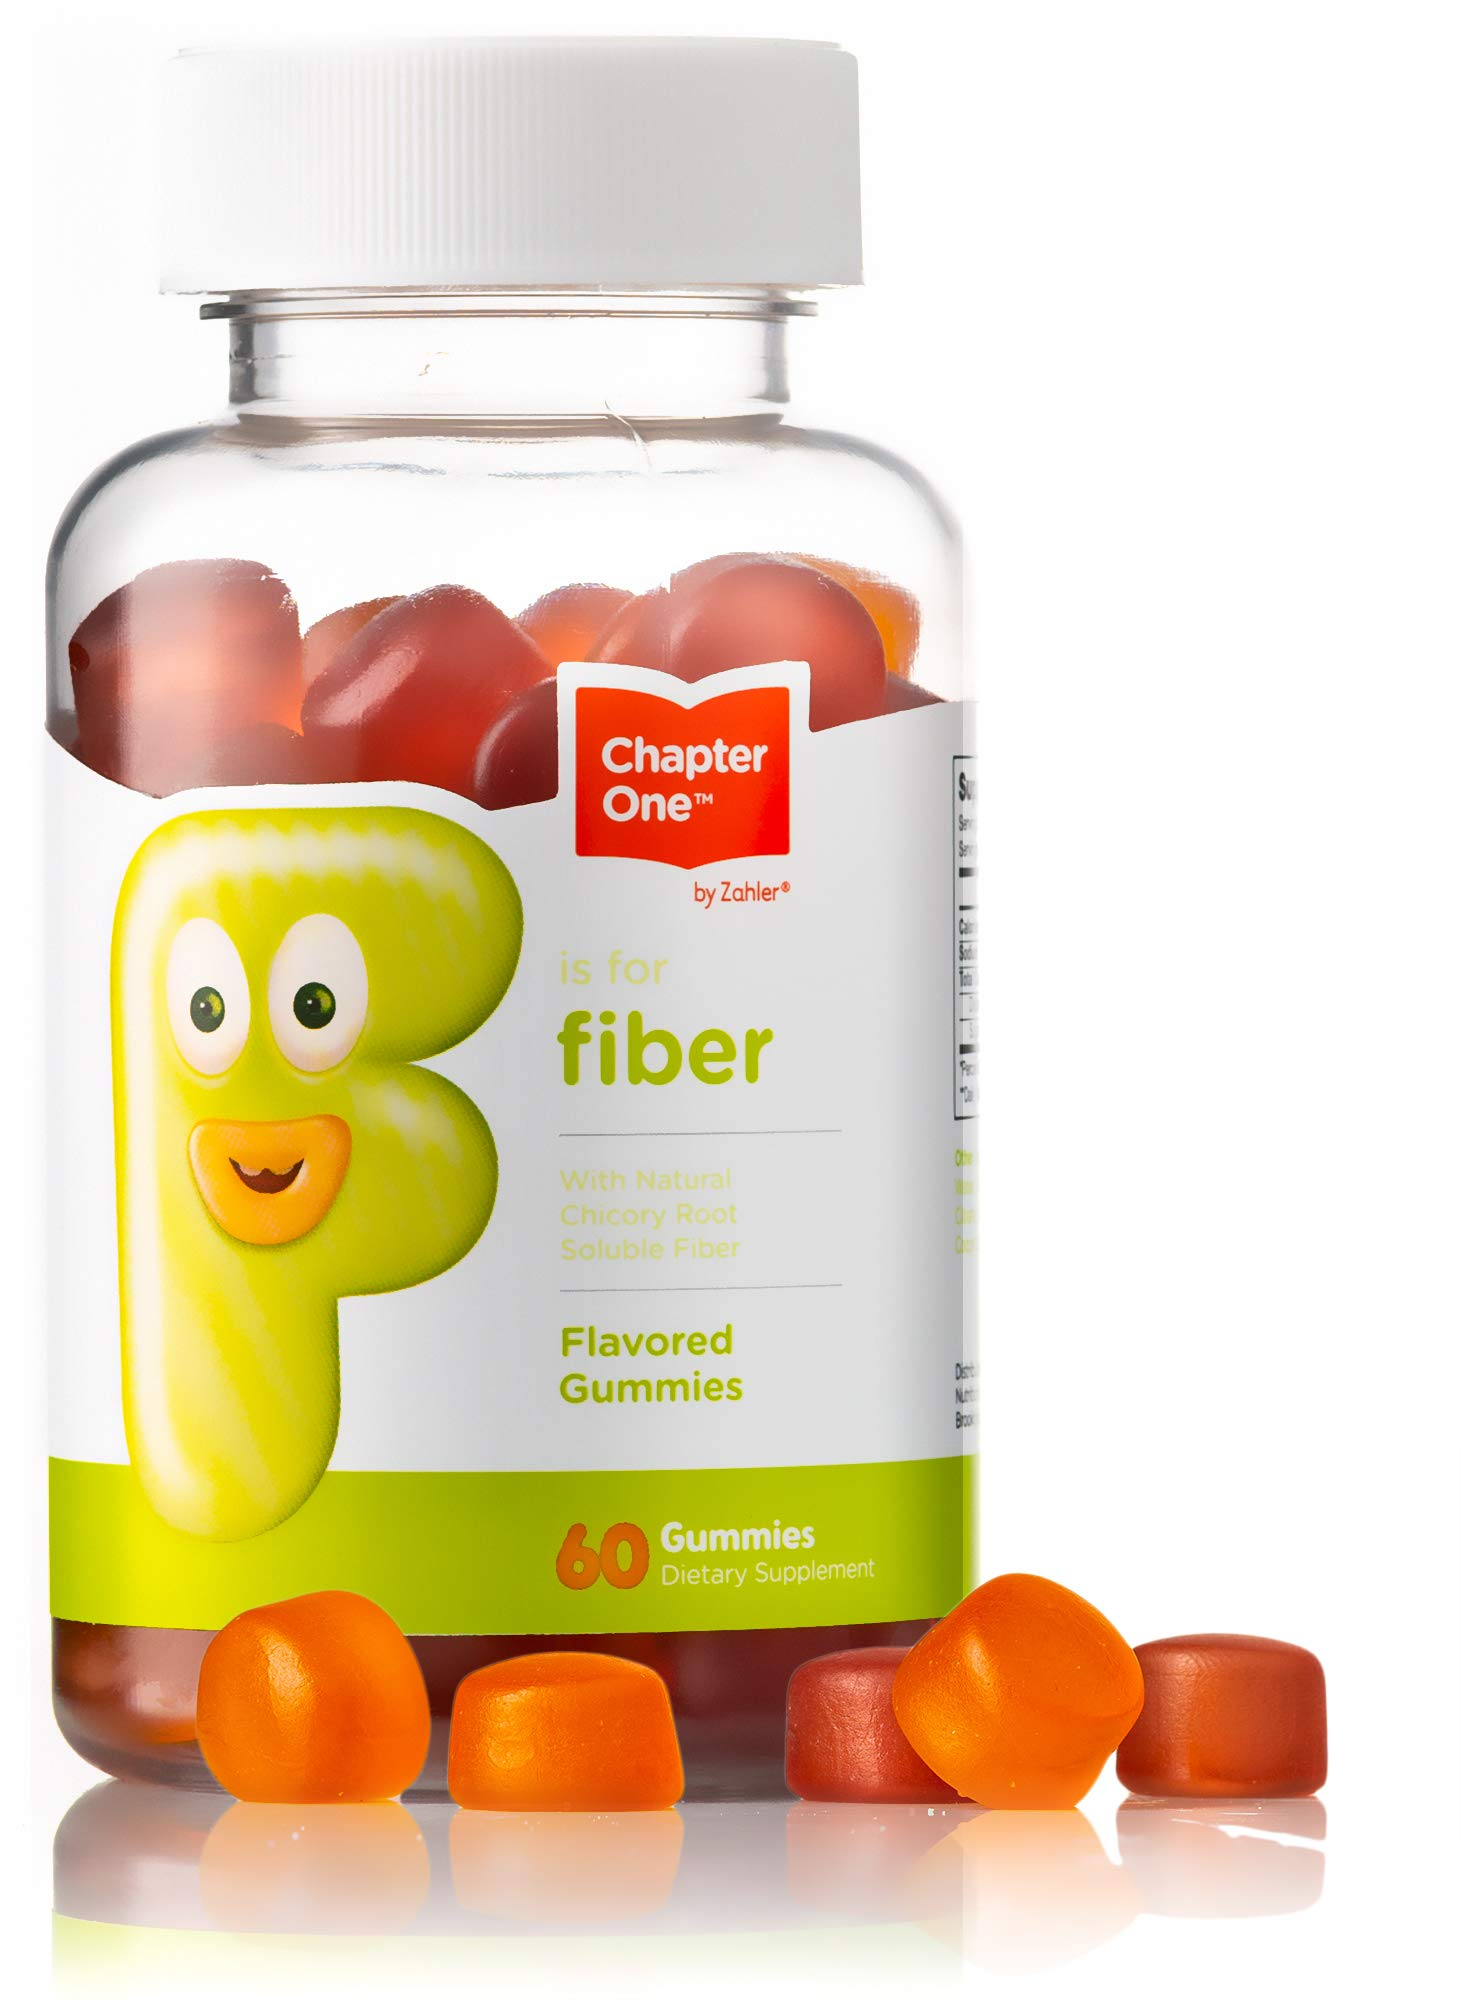 Chapter One Fiber Gummies, with Natural Chicory Root Soluble Fiber, Certified Kosher, 60 Flavored Gummies by Zahler